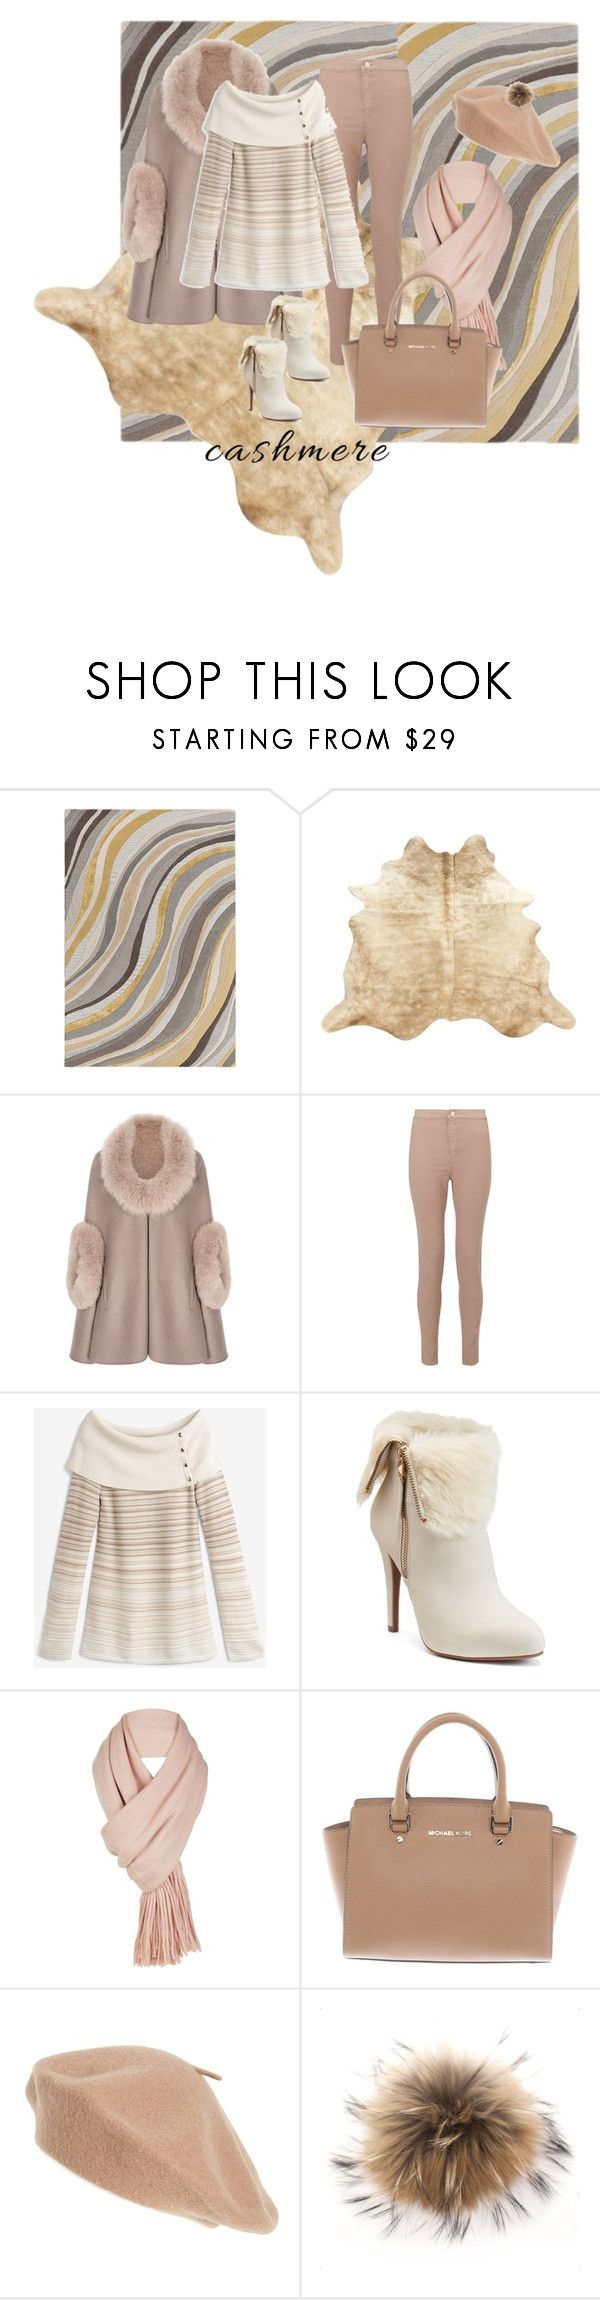 """""""Enter contest Save Draft Open New WomenMenHomeMy ItemsCollectionsContestCashmere Sw...× ×Shoes×Bags×beret×cashmere×cashmere×Rugs× Cozy Cashmere Sweaters"""" by lucky55ks ❤ liked on Polyvore featuring Artistic Weavers, Miss Selfridge, White House Black Market, Jennifer Lopez, Free People, Michael Kors, Halogen and cashmere"""